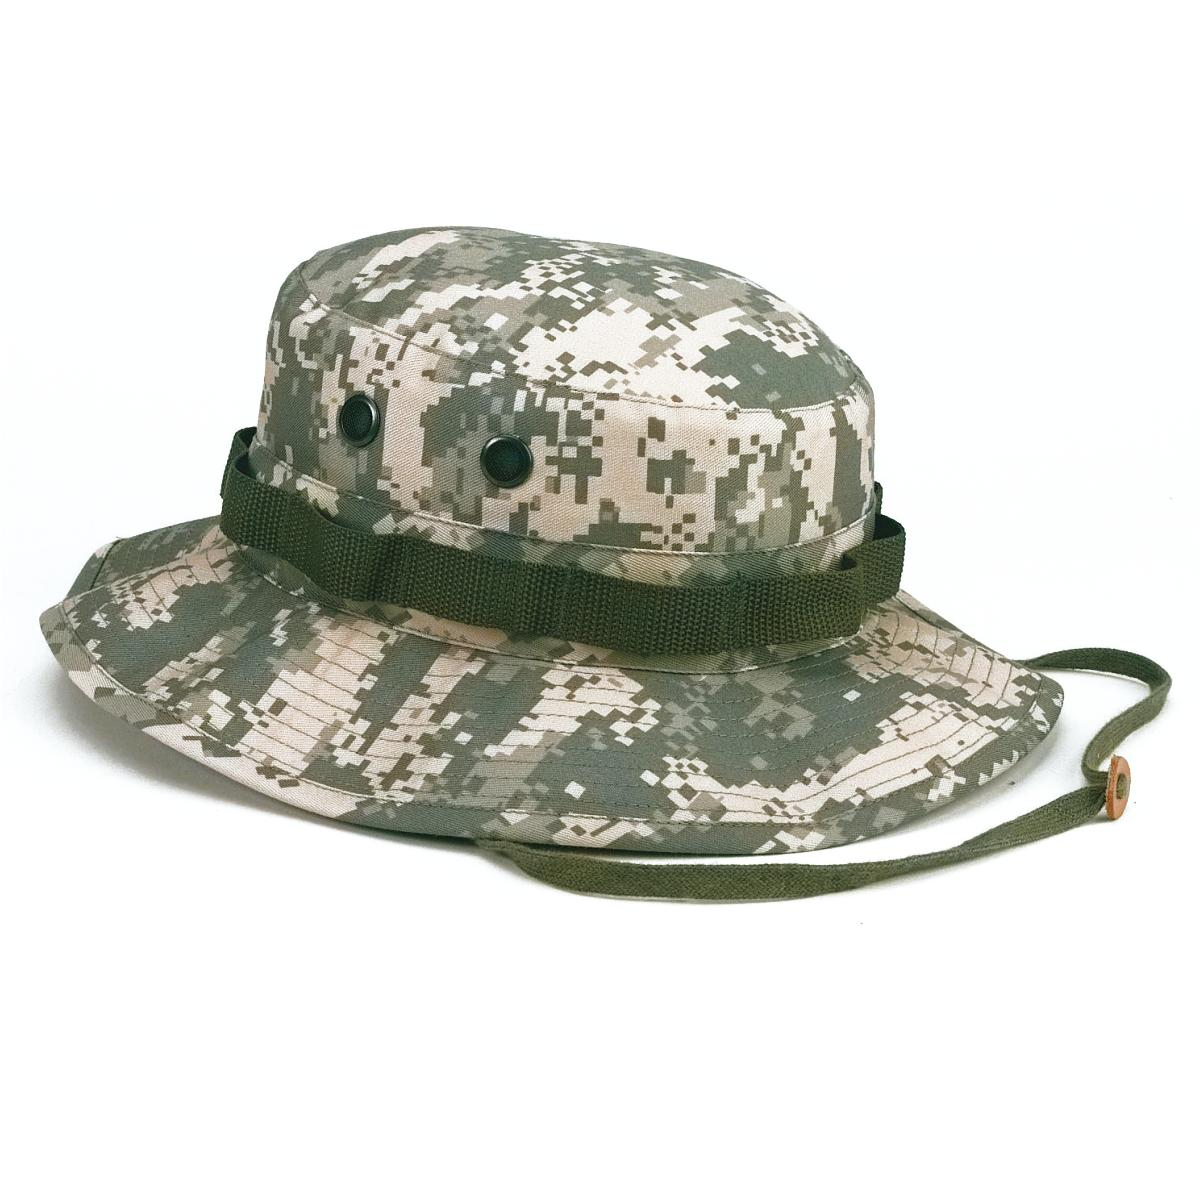 Rothco ACU Digital Camo Boonie Hat, Military Style, in Army Camouflage Pattern at Sears.com